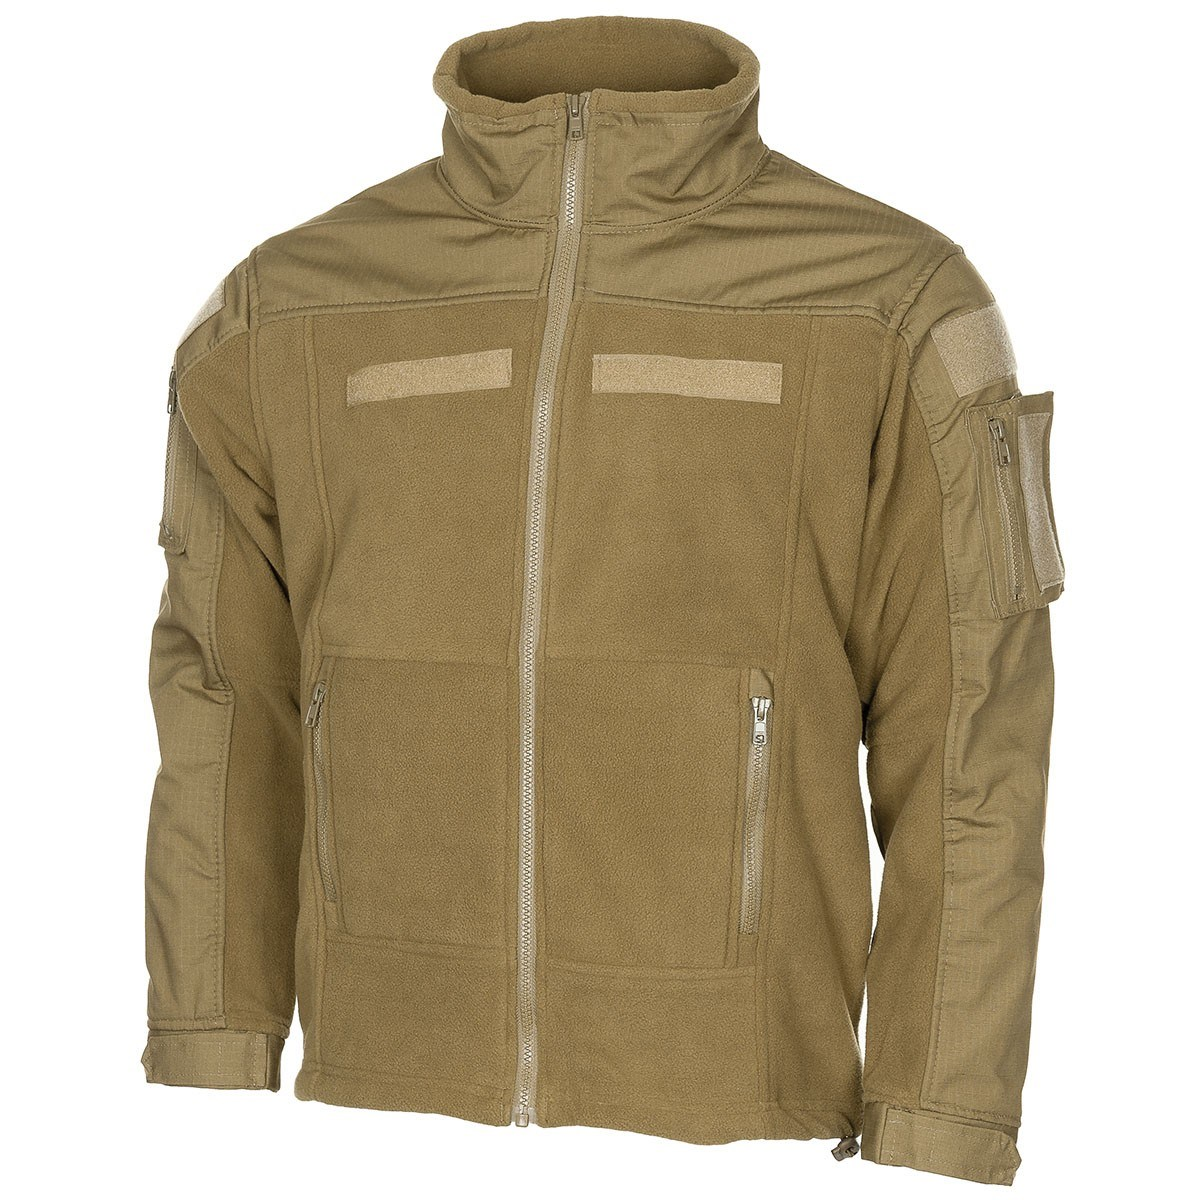 Bunda taktická fleece COMBAT COYOTE MFH Defence 03811R L-11